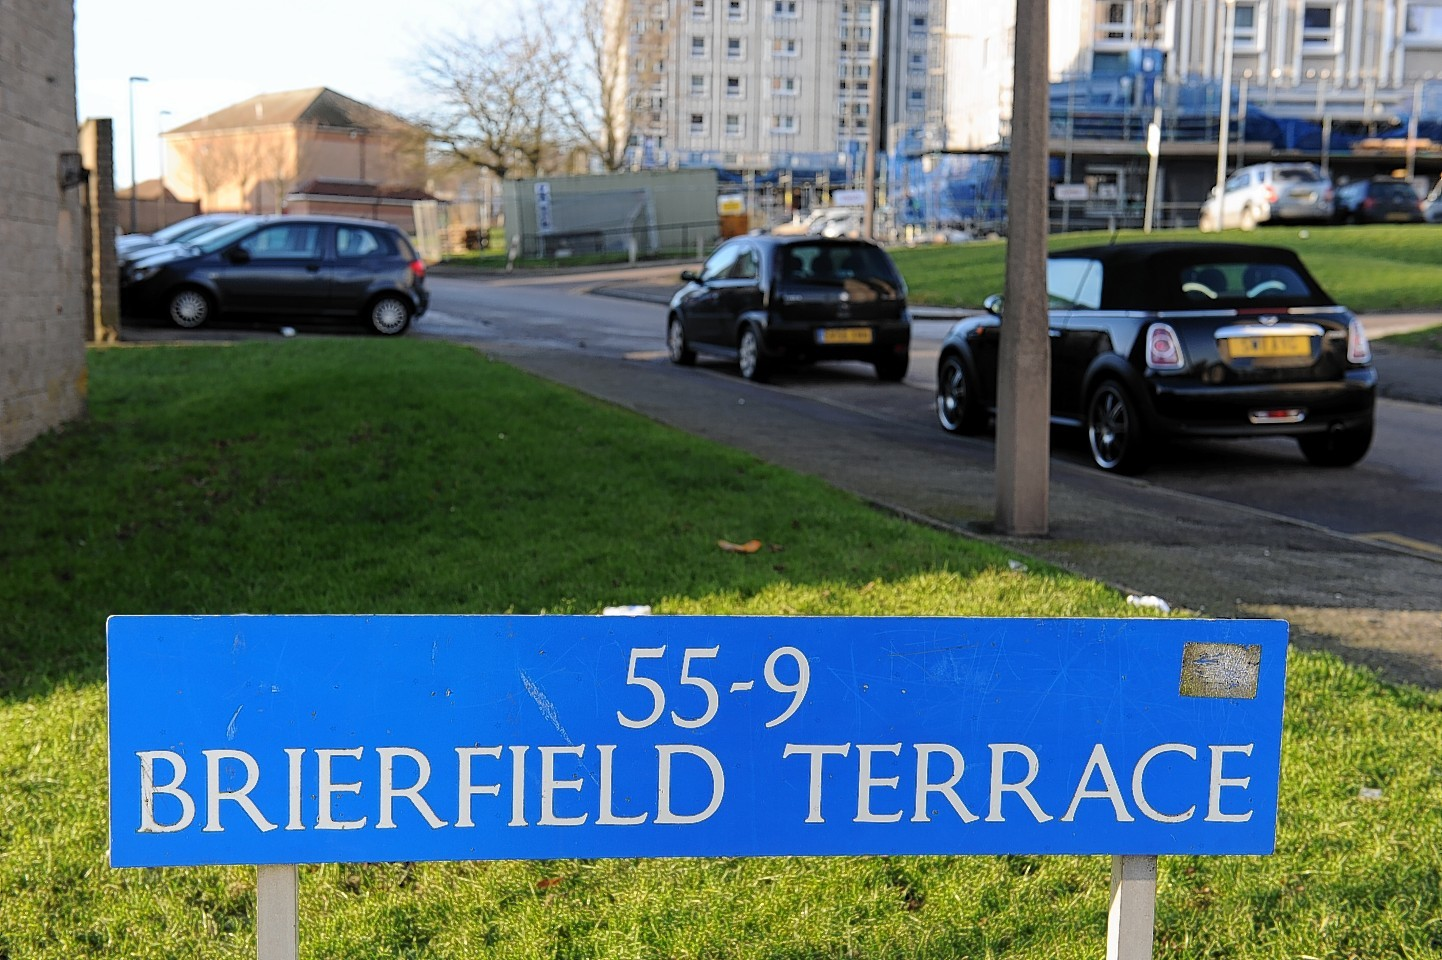 Brierfield Terrace